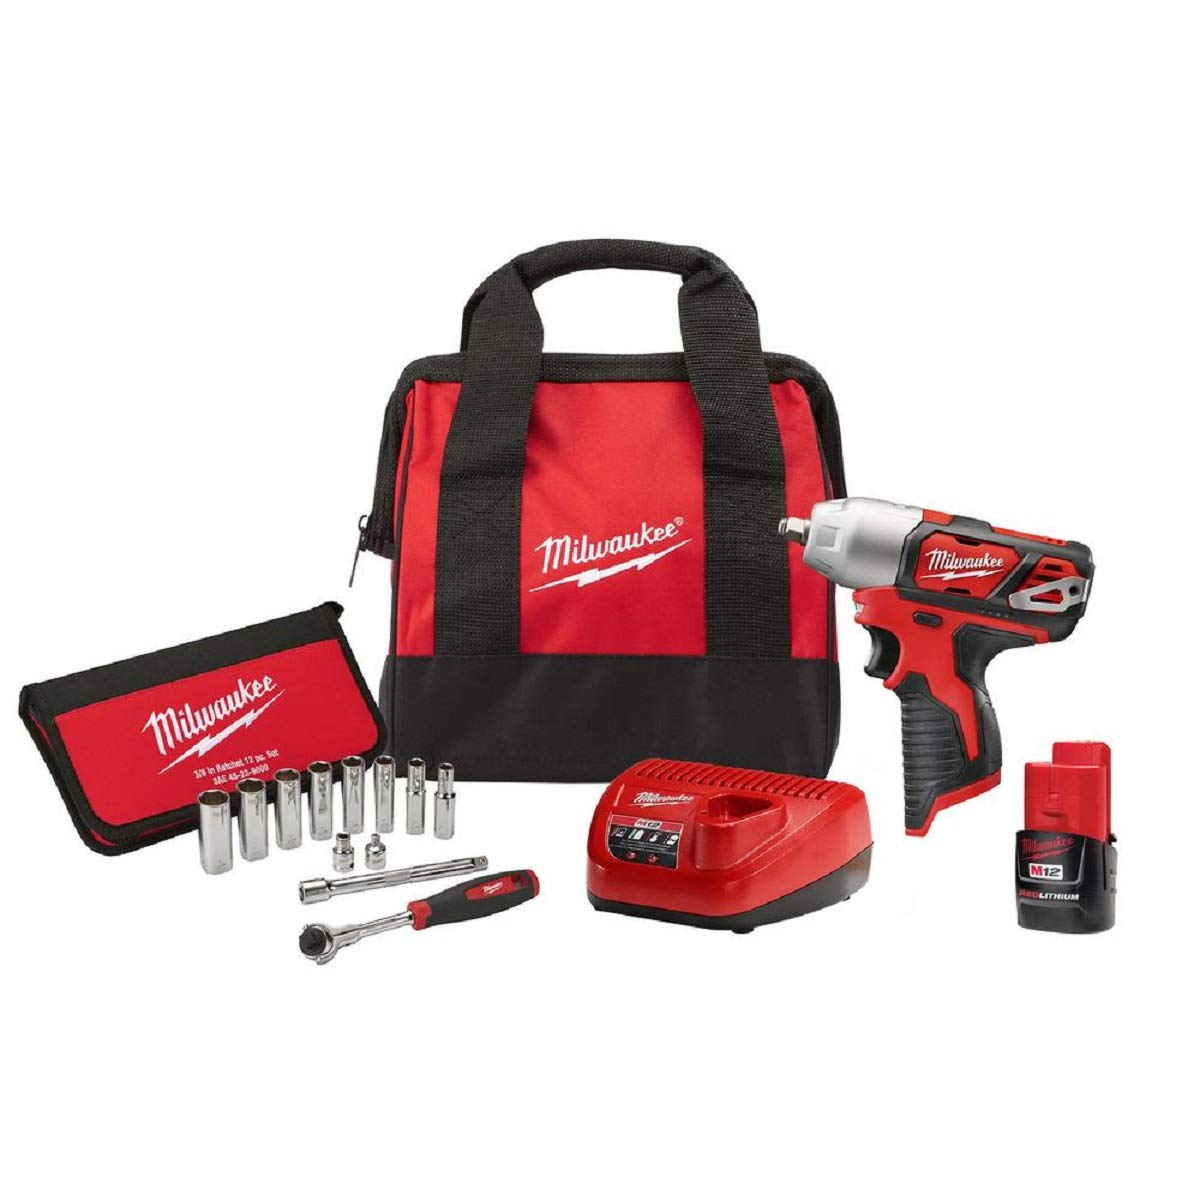 Milwaukee 2463-21P M12 12-Volt Lithium-Ion 3 8 in. Cordless Impact Wrench Kit With 3 8 in